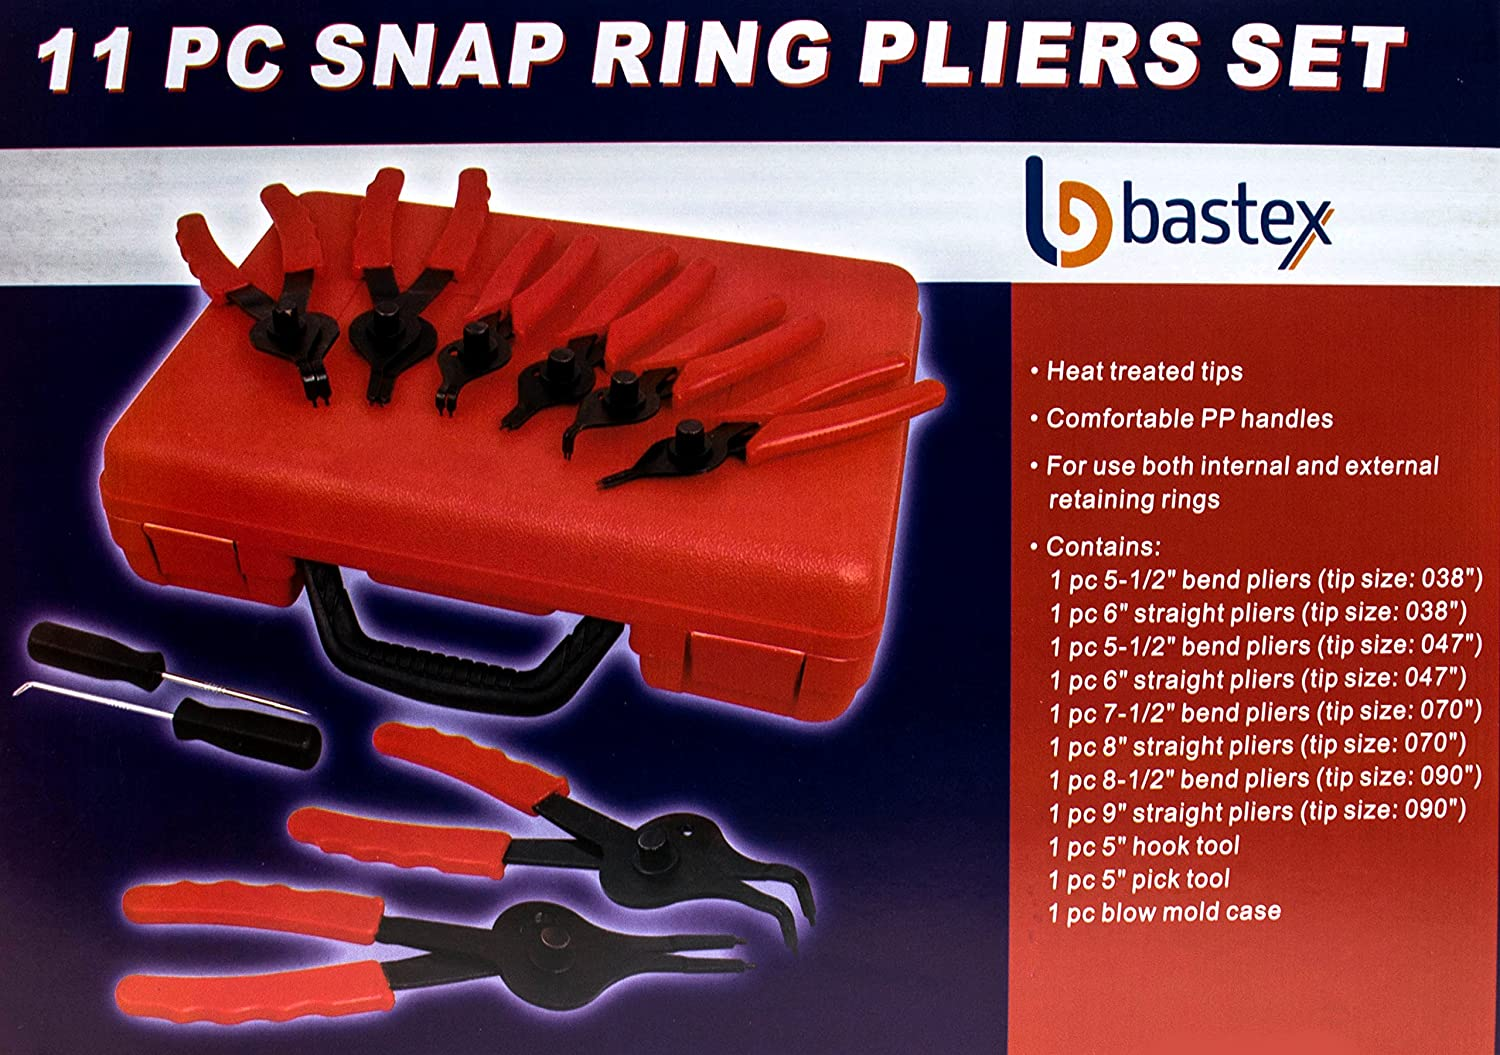 Easy Push nut E Spiral an Split ring Removal. Bastex 11 piece Internal External Plier Set for Retaining Snap Ring and Circlip Removal Tools for Automobiles Lawnmowers and Farm Equipment Maintenance